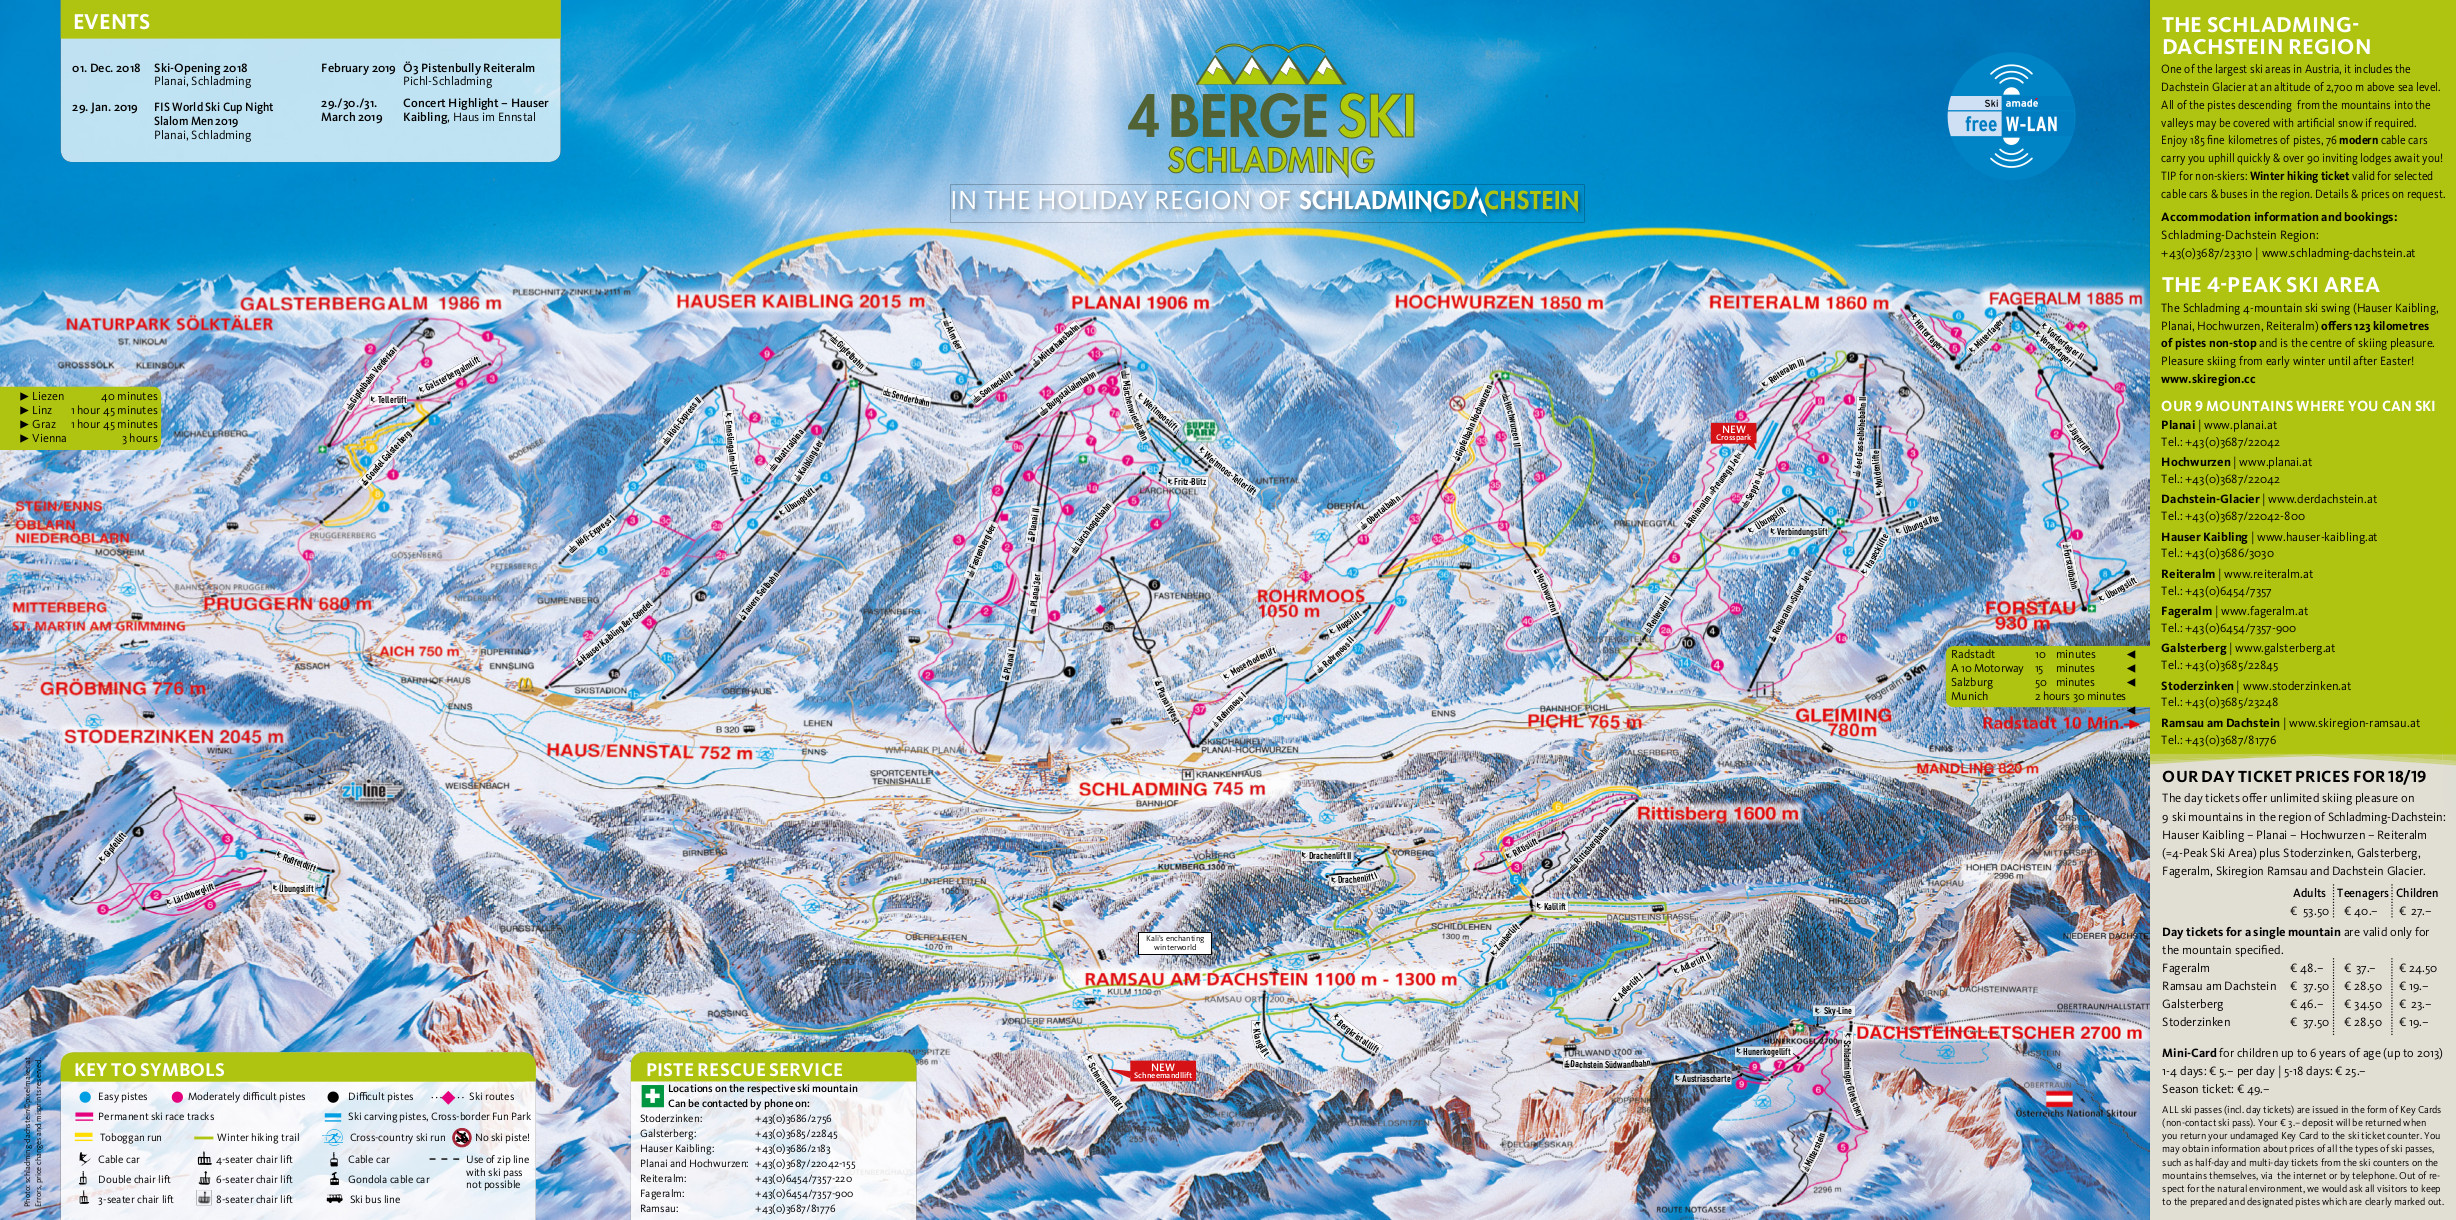 Schladming Piste / Trail Map